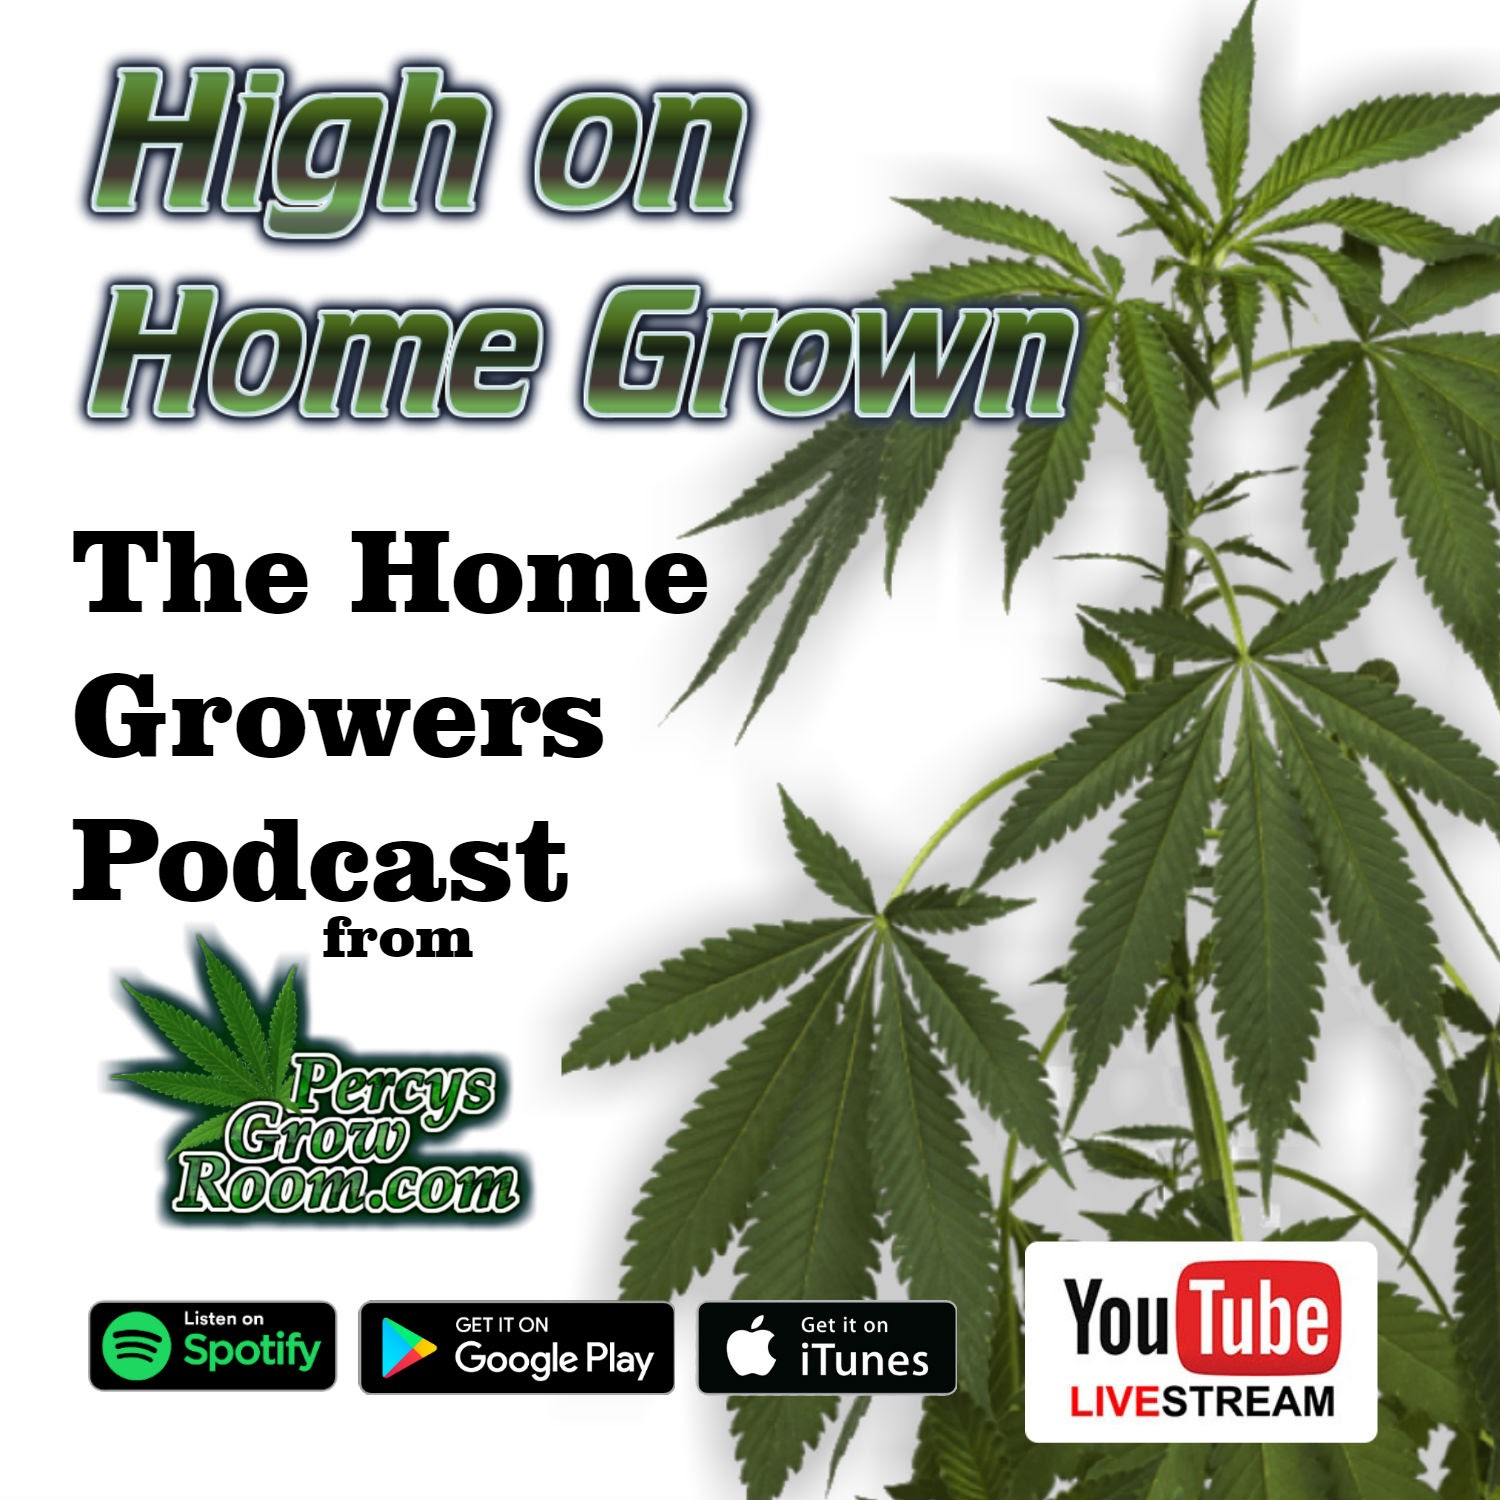 high on homegrown - Best Cannabis Growing Podcast 2020